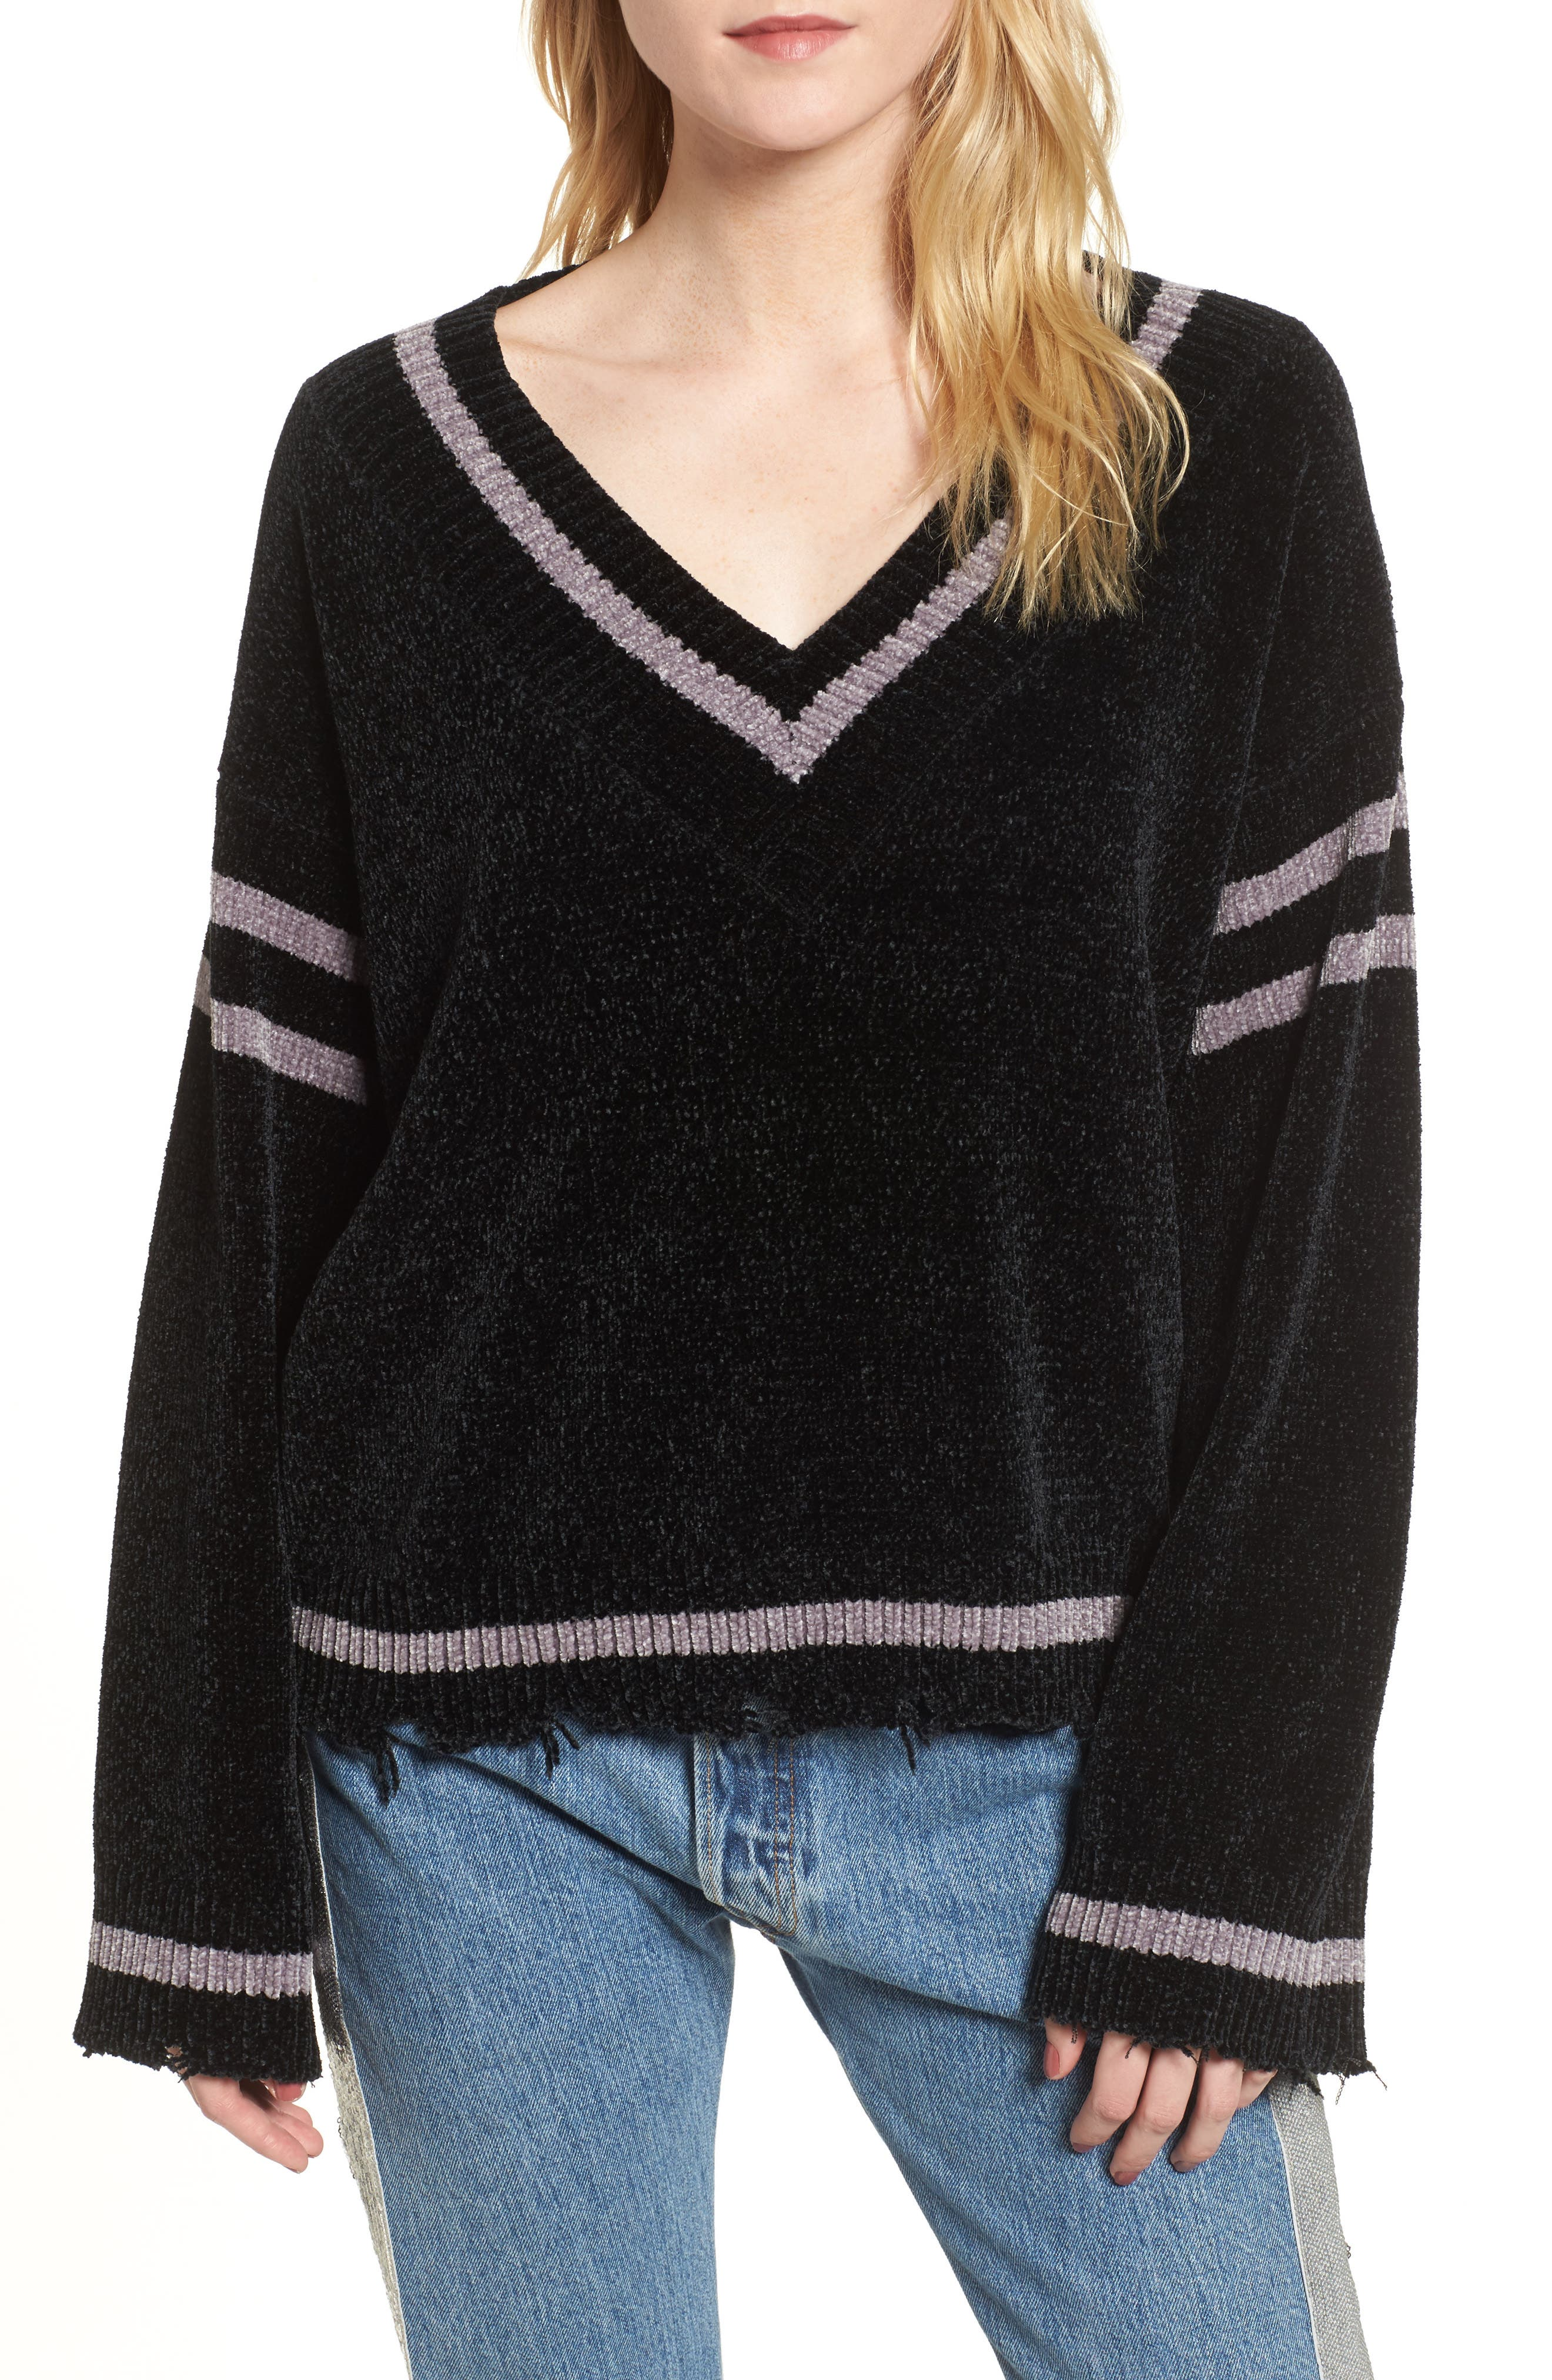 Oversize V-Neck Sweater,                         Main,                         color, Black/ Med. Heather Grey